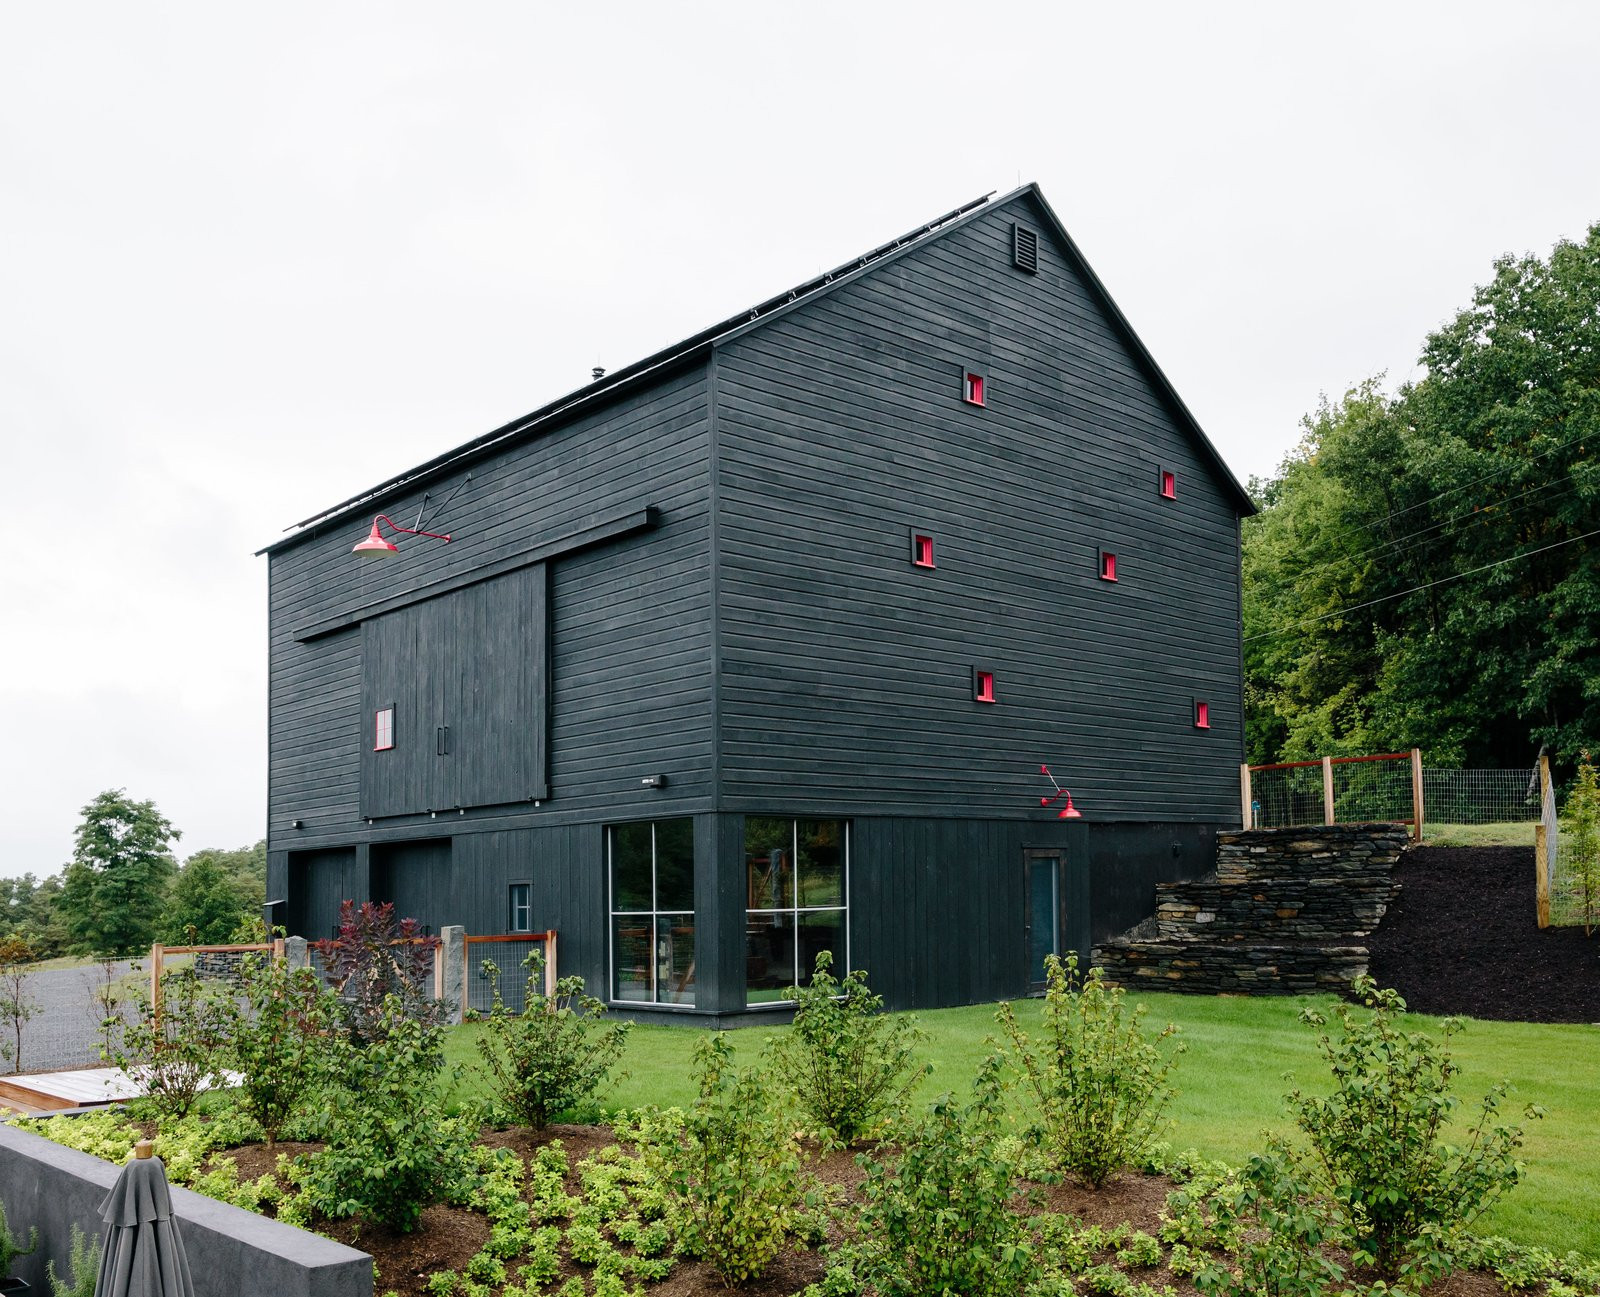 """Gardens, Grass, Exterior, Wood Siding Material, Barn Building Type, House Building Type, Gable RoofLine, Cabin Building Type, and Farmhouse Building Type While the house is a private sanctuary, the barn is a gathering place, especially in summer. On its lower level, a studio apartment recalls the main house with its Intus windows oriented to maximize solar gain.  Photo 10 of 11 in A Guide to Shou Sugi Ban and 8 Homes Featuring the Japanese Technique from A Passive House and """"Sauna Tower"""" Join a 19th-Century Barn in the Hudson Valley"""